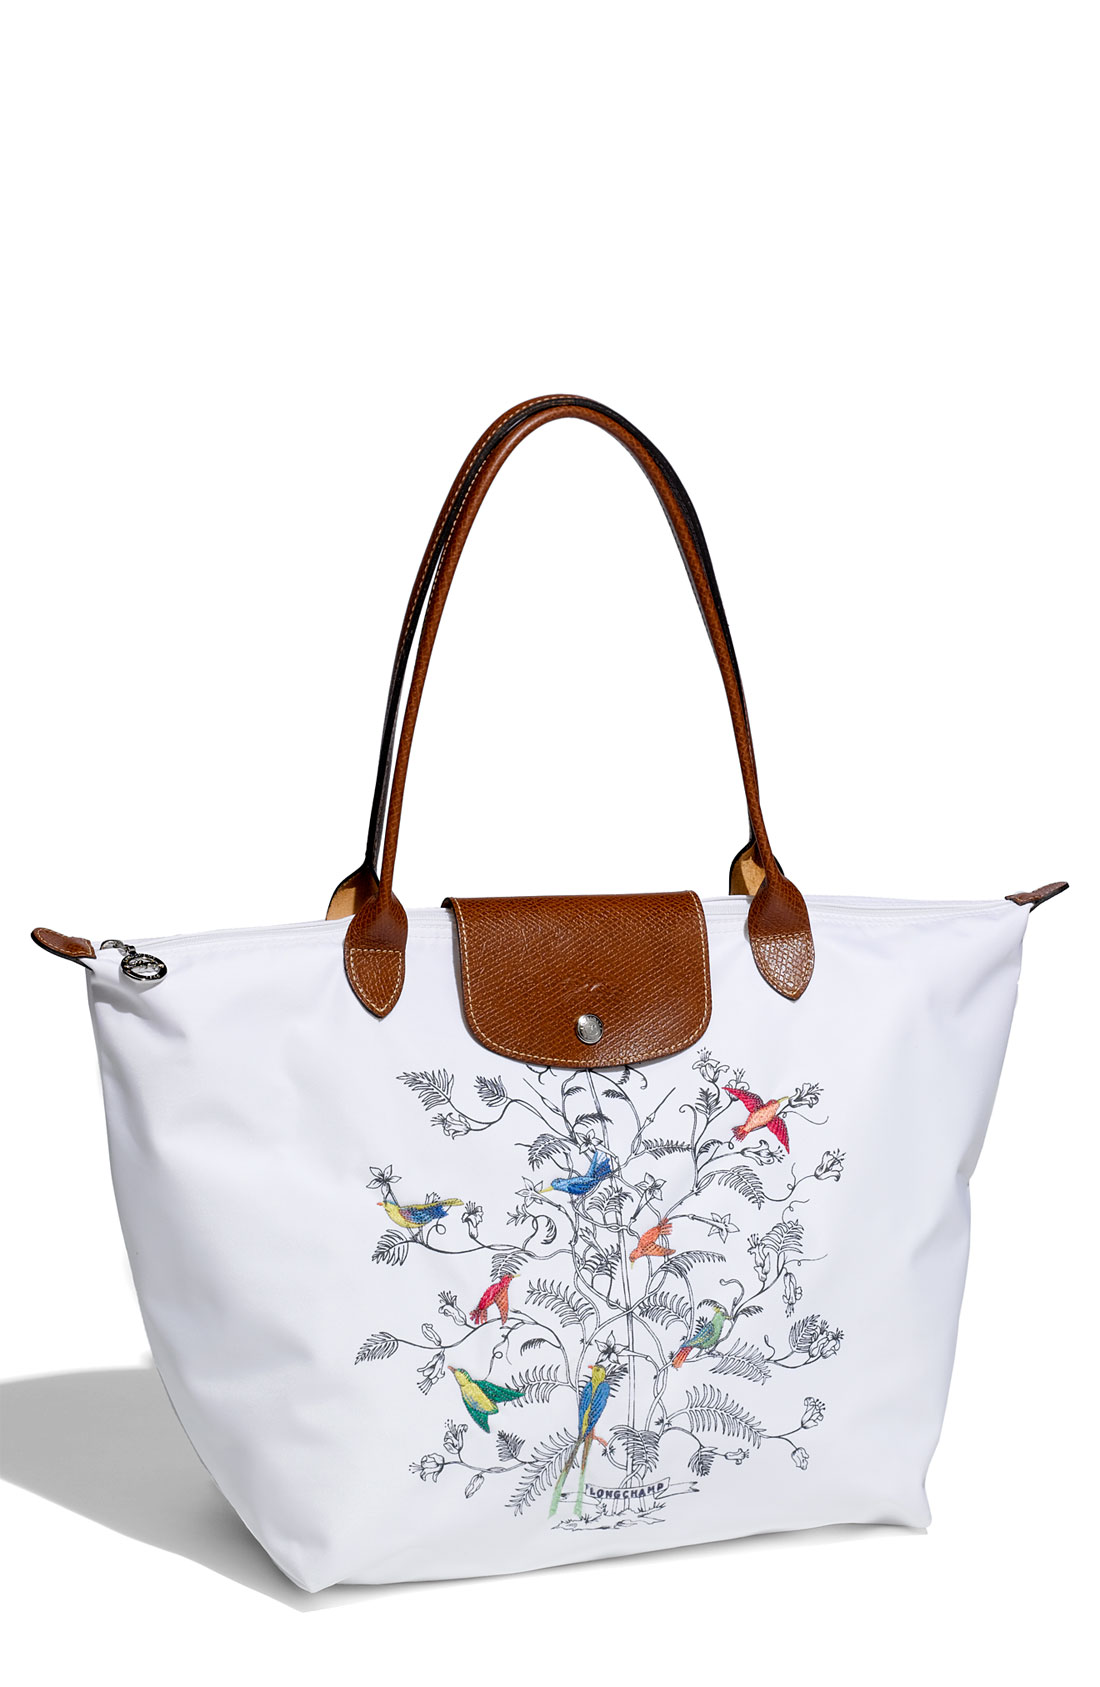 longchamp le pliage arbre de vie large tote in white lyst. Black Bedroom Furniture Sets. Home Design Ideas